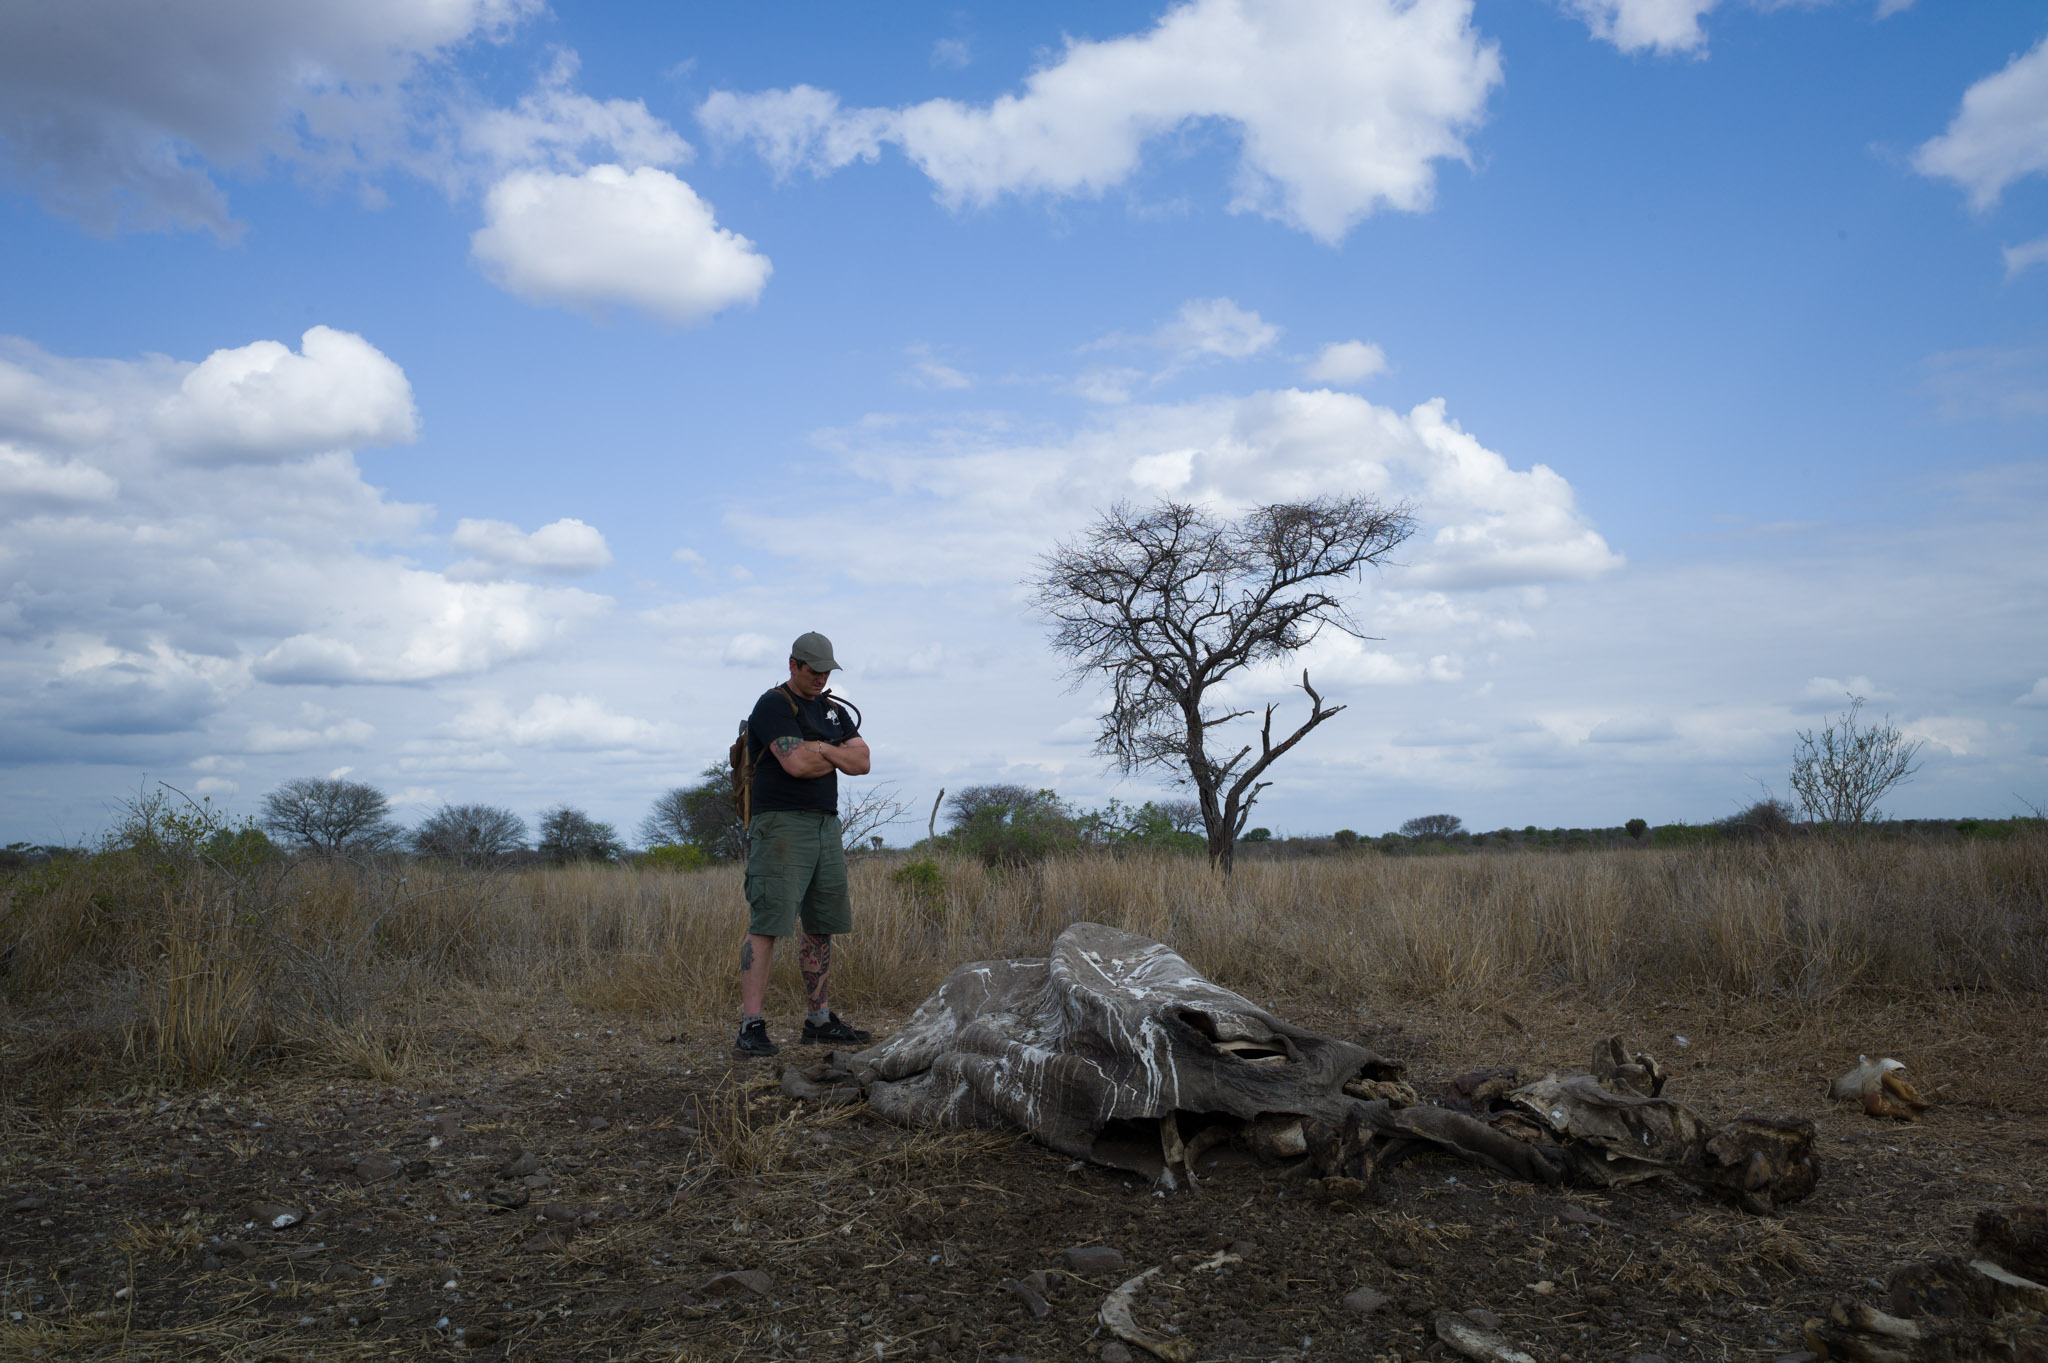 "Damien Mander inspects the remains of a rhino killed by poachers in the Greater Lebombo Conservancy, Mozambique. ""We have to be right 100% of the time,"" says Mander, referring to the extreme challenge of protecting rhinos 24/7. ""Poachers need to be right once."" Photograph by Erico Hiller"